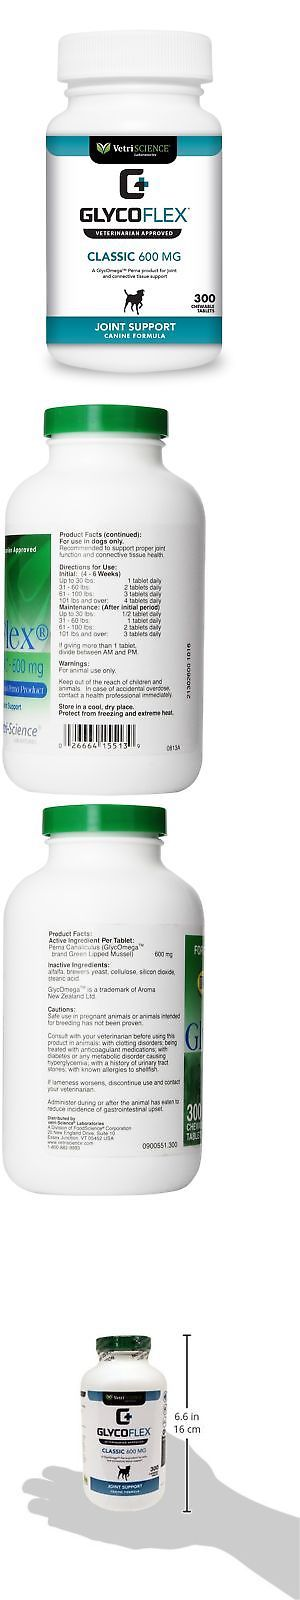 Vitamins and Supplements 134754: Glyco-Flex 600 Mg 300 Count -> BUY IT NOW ONLY: $35.29 on eBay!